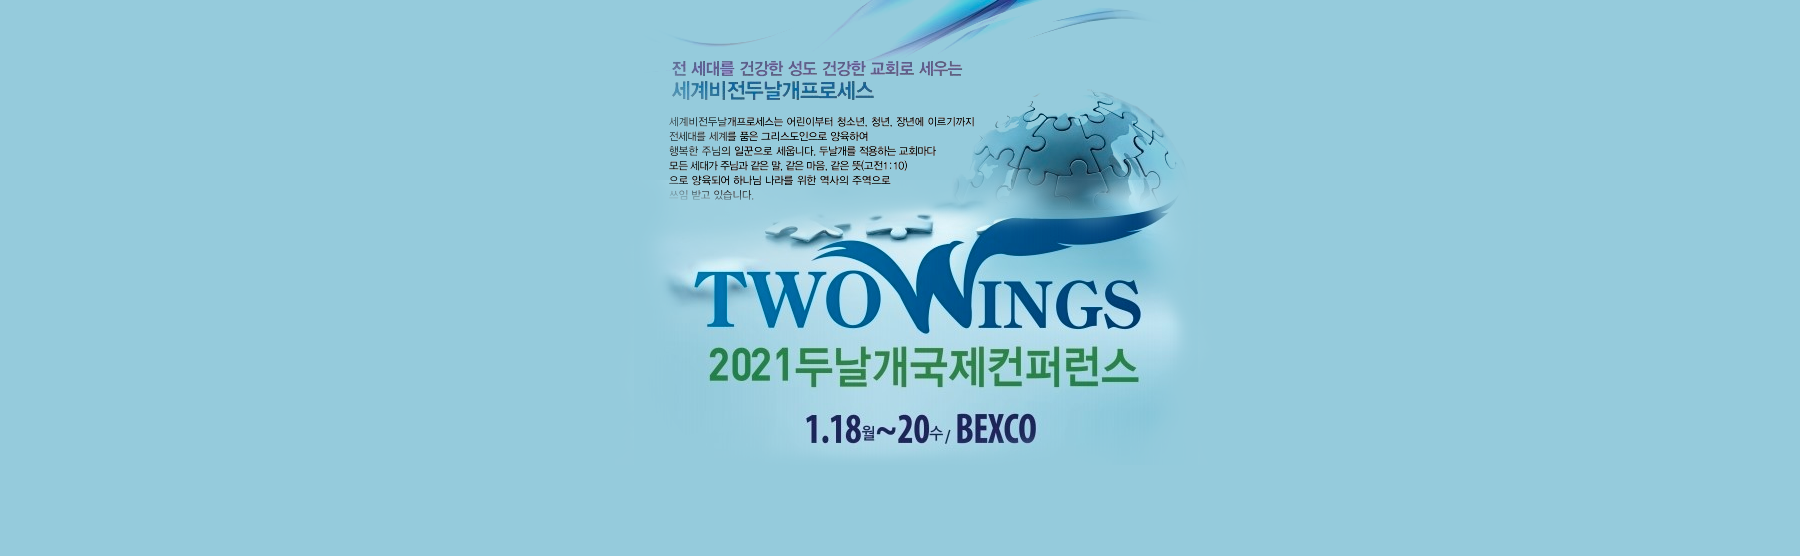 200116-two-mbs-2021con